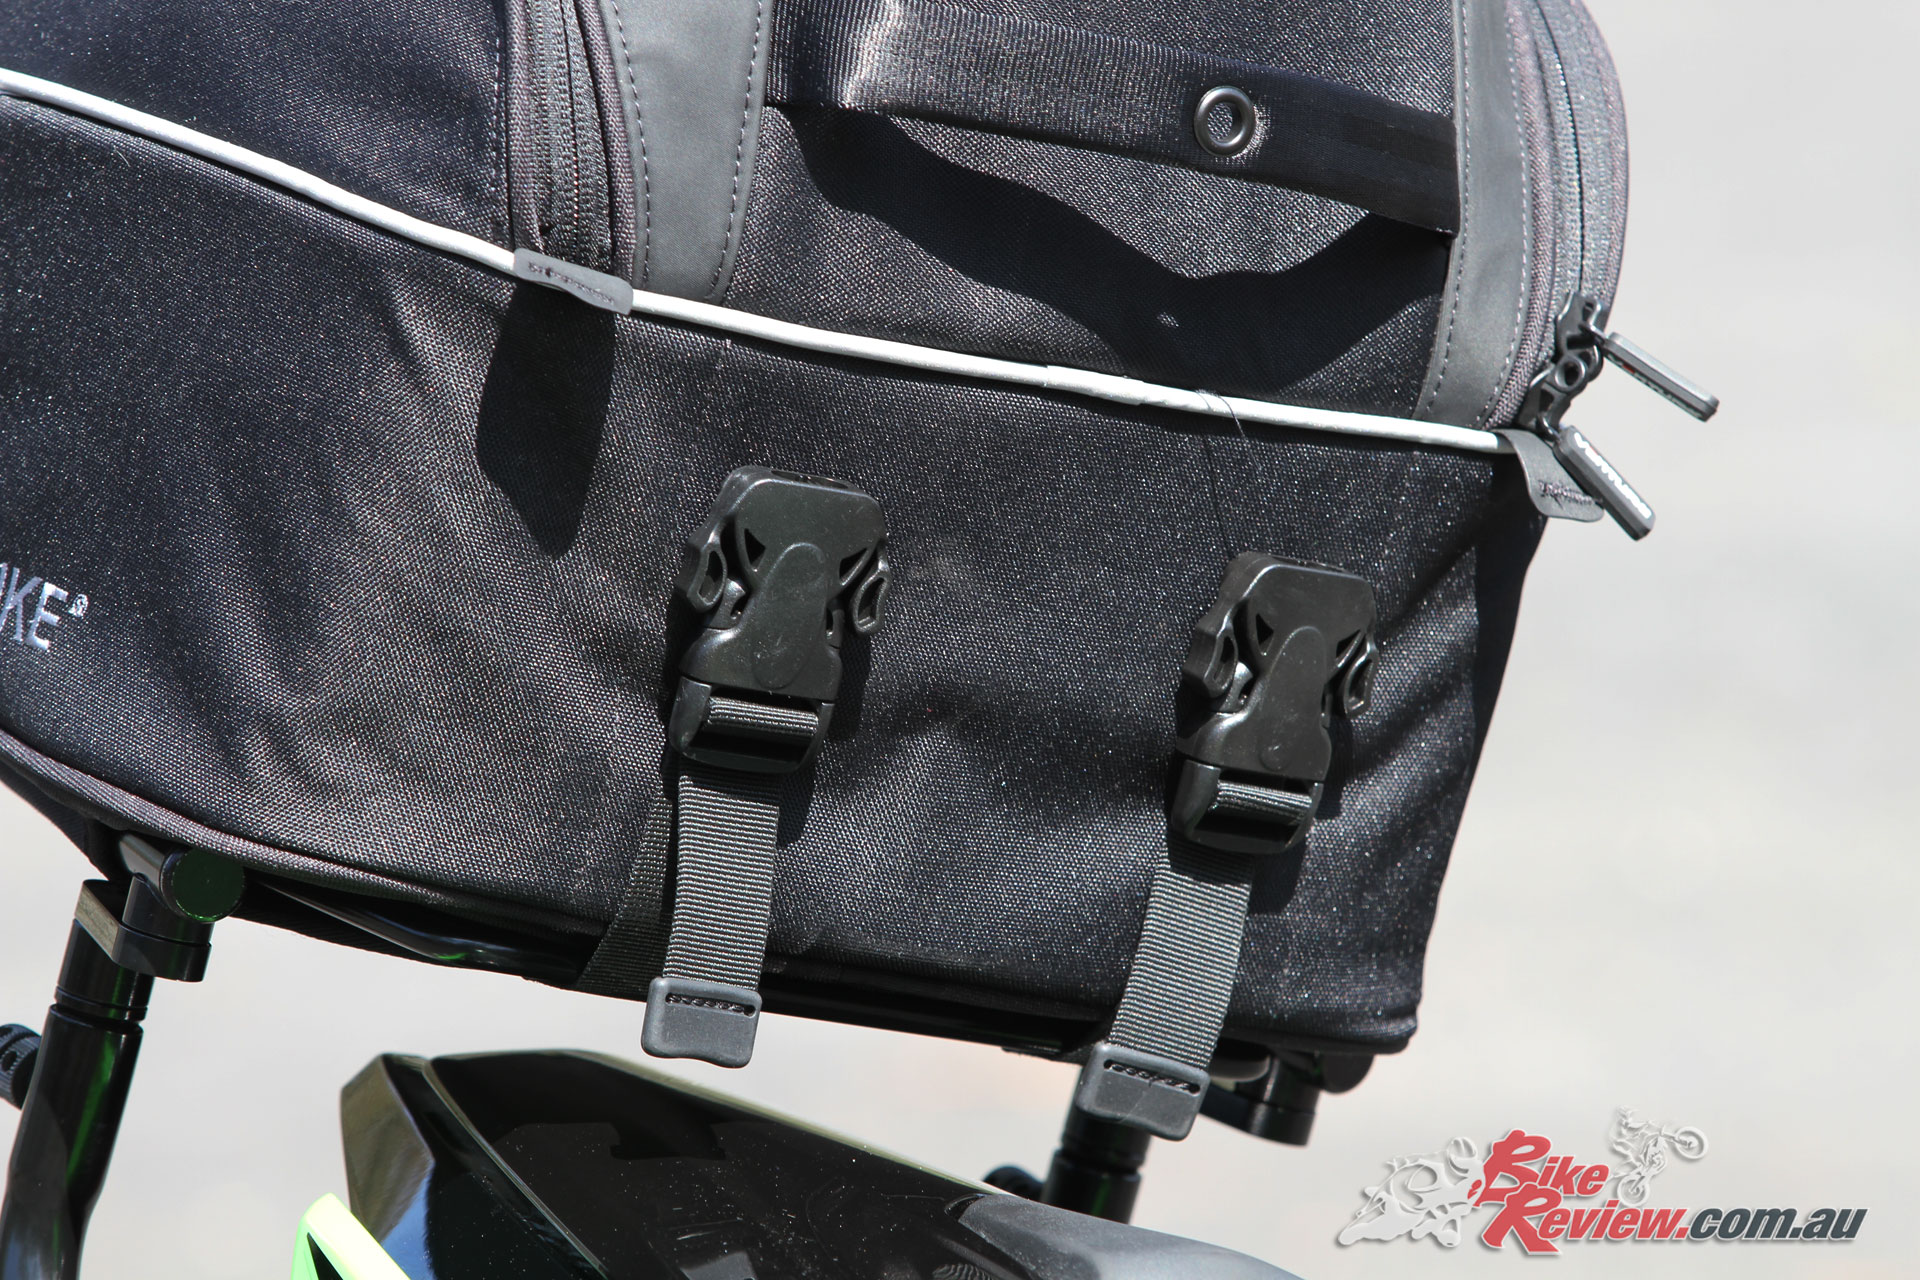 These quick release buckles are seriously heavy duty, meaning the bag won't be coming loose if secured properly, but requires a bit of strength to release.